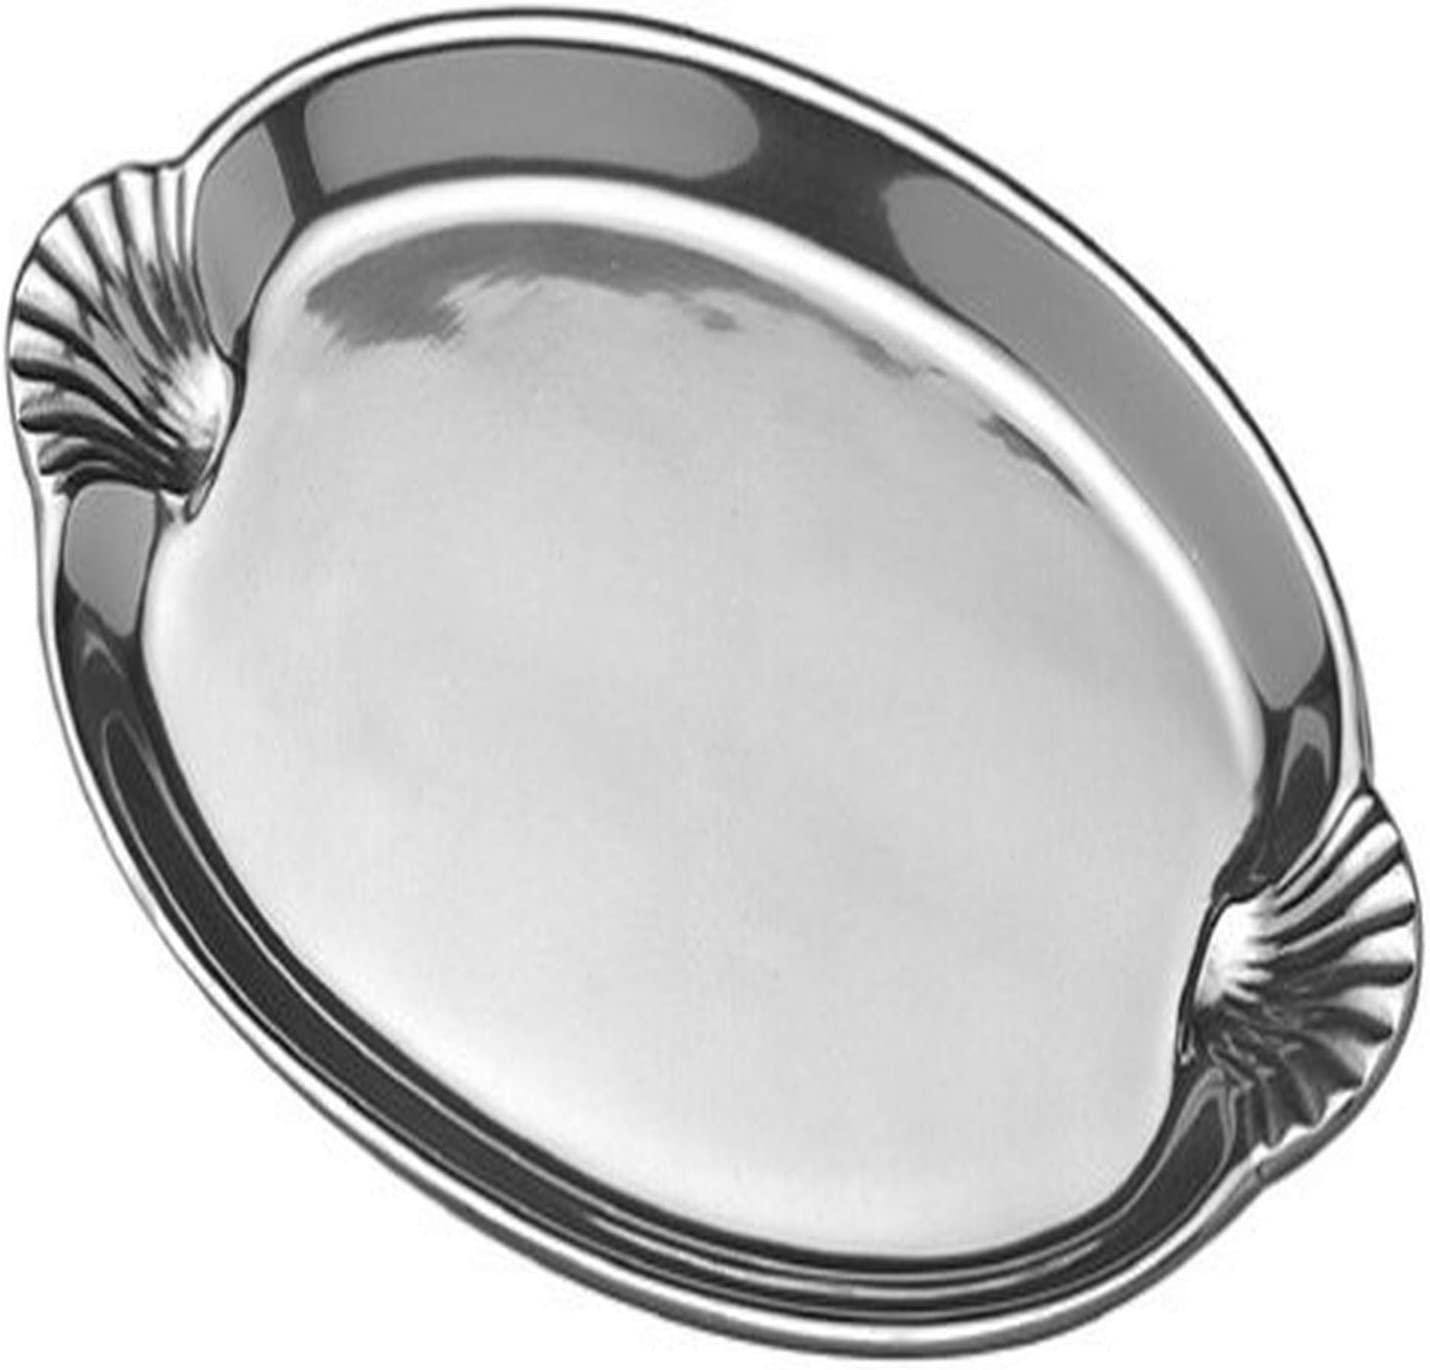 Wilton Armetale Sea Life Scallop Handled Oval Serving Tray, 10.75-Inch-by 16.5-Inch - 356234 61XZHVtpVAL